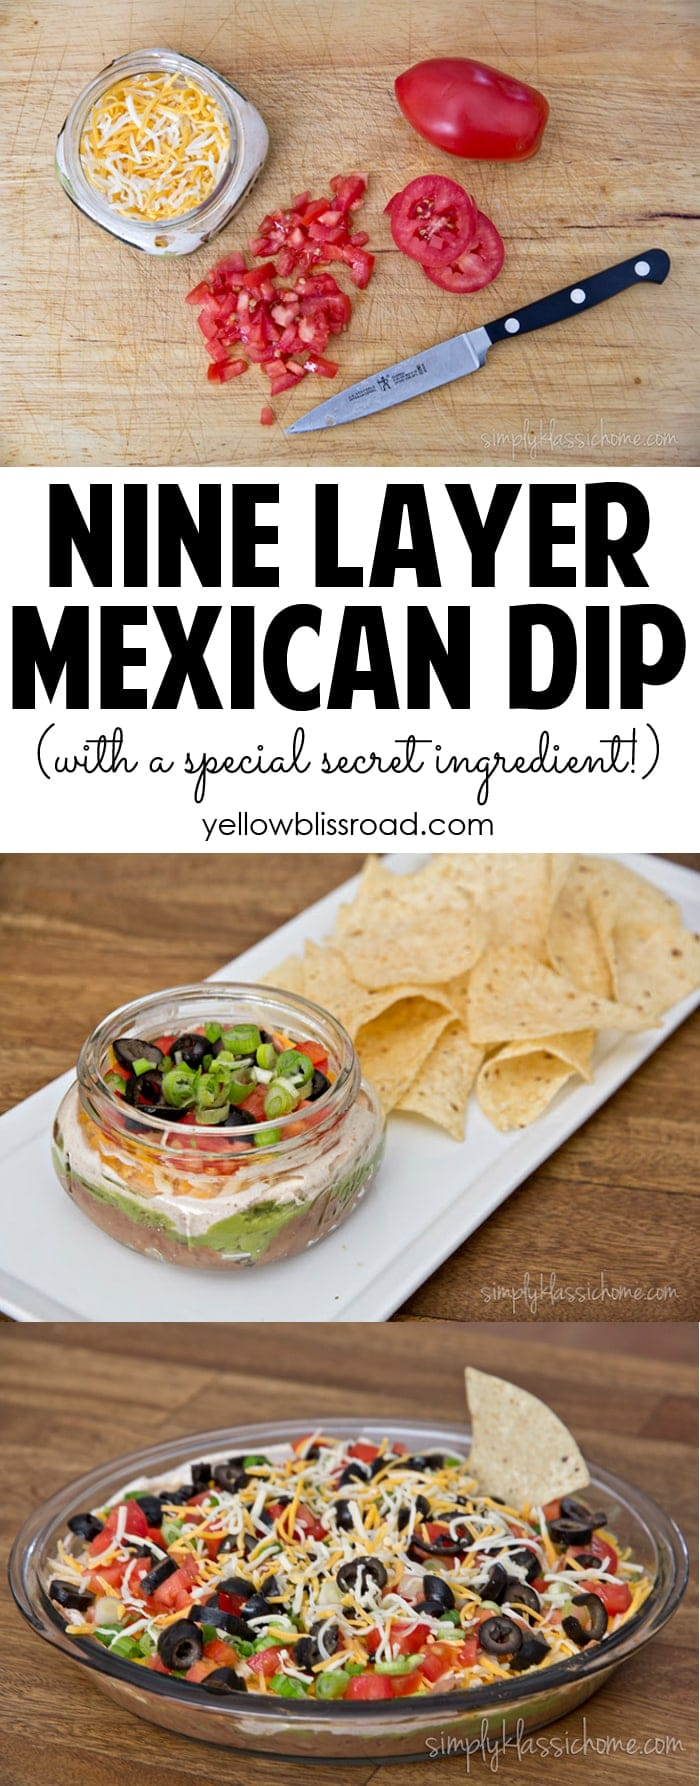 Nine Layer Mexican Dip with a special secret ingredient! So delicious, and perfect for game day parties!